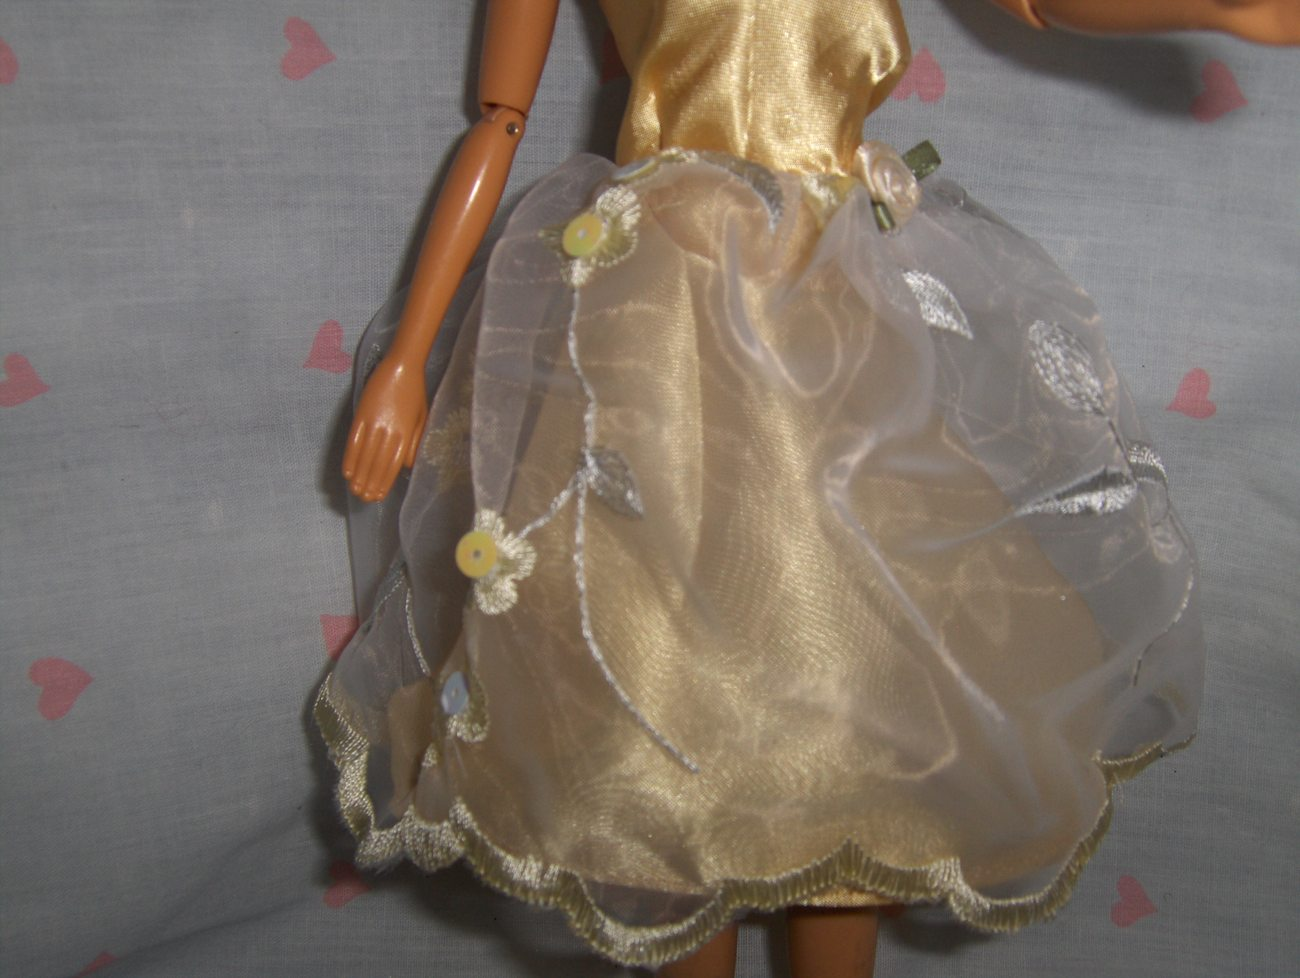 Yellow Satin Prom Dress with White Embroidered Chiffon Overlay fits Barbie and m